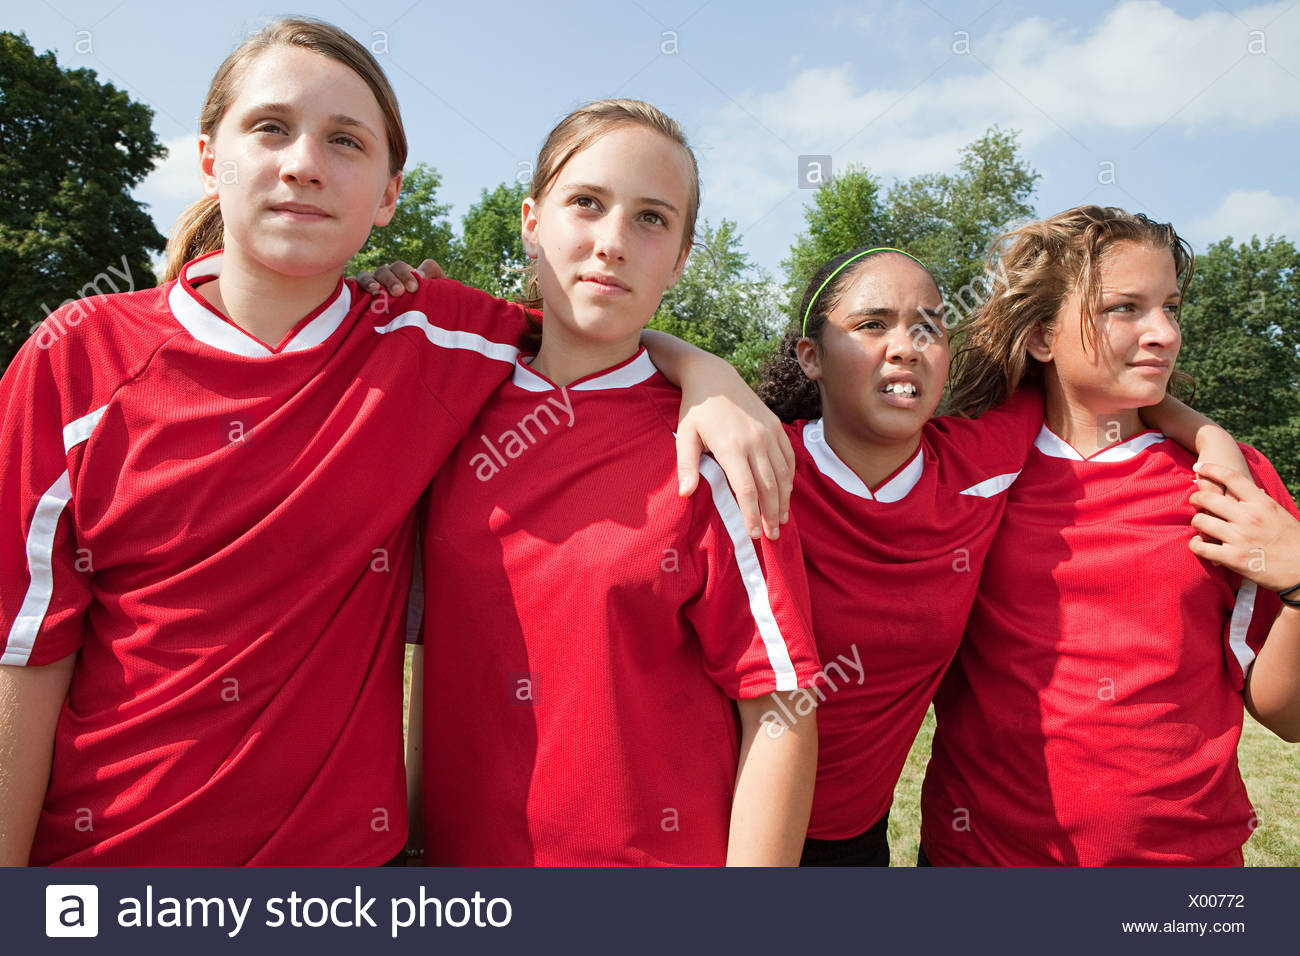 Girl soccer players - Stock Image